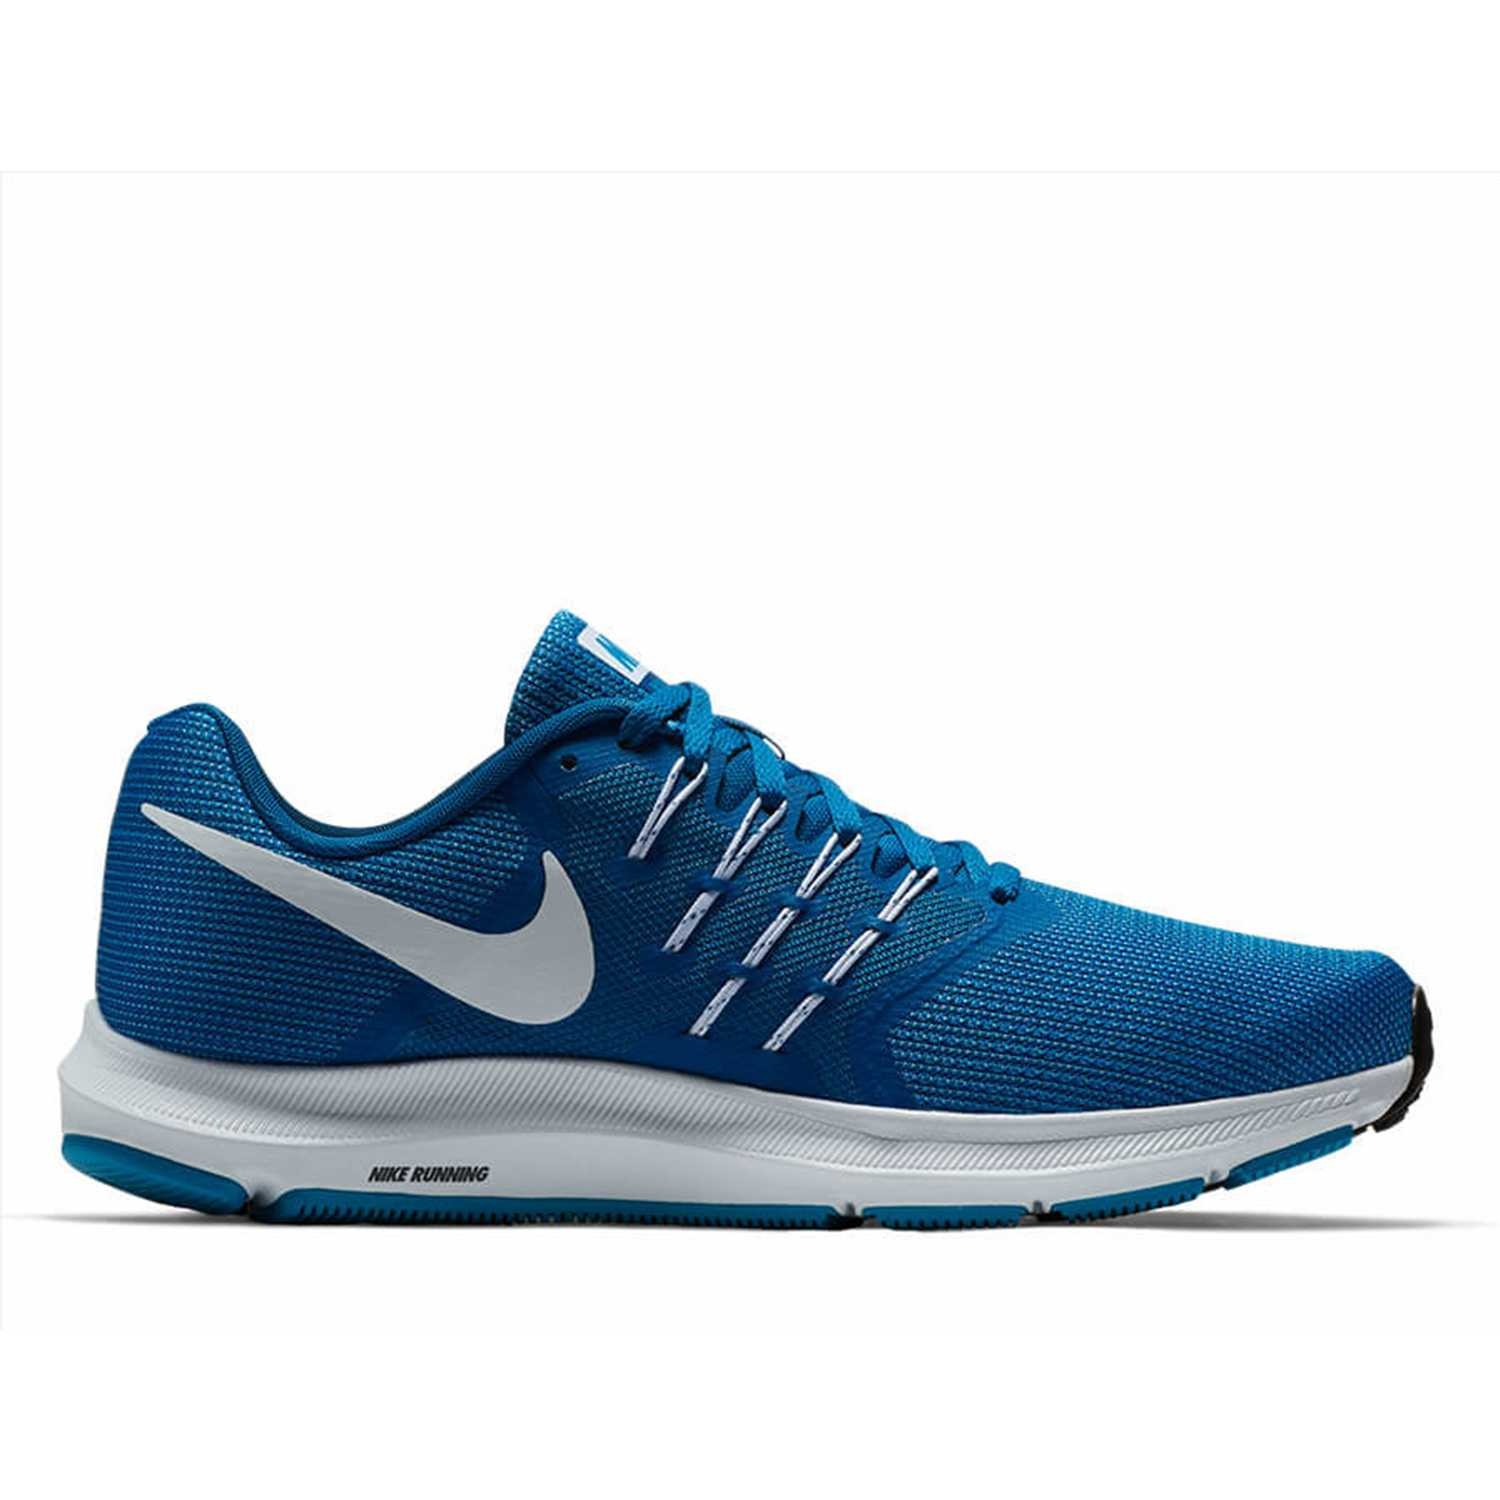 huge selection of ec88a 7f543 Zapatilla de Hombre Nike Azul  Blanco run swift